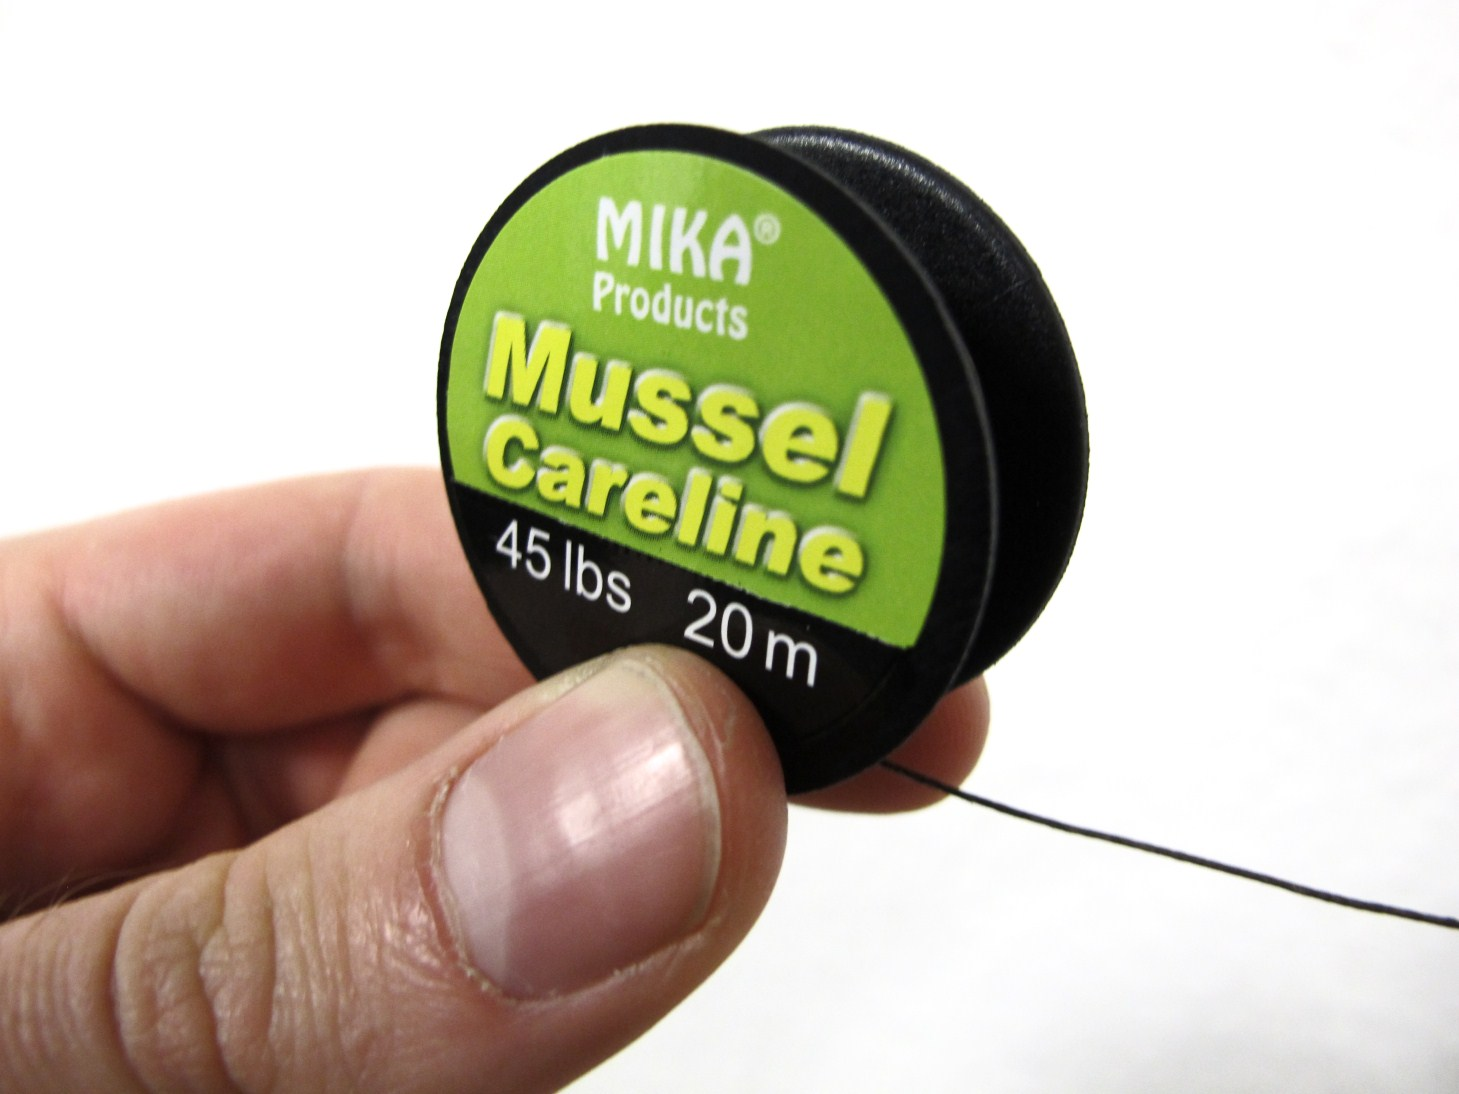 MIKA Mussel Care Line 45 lbs